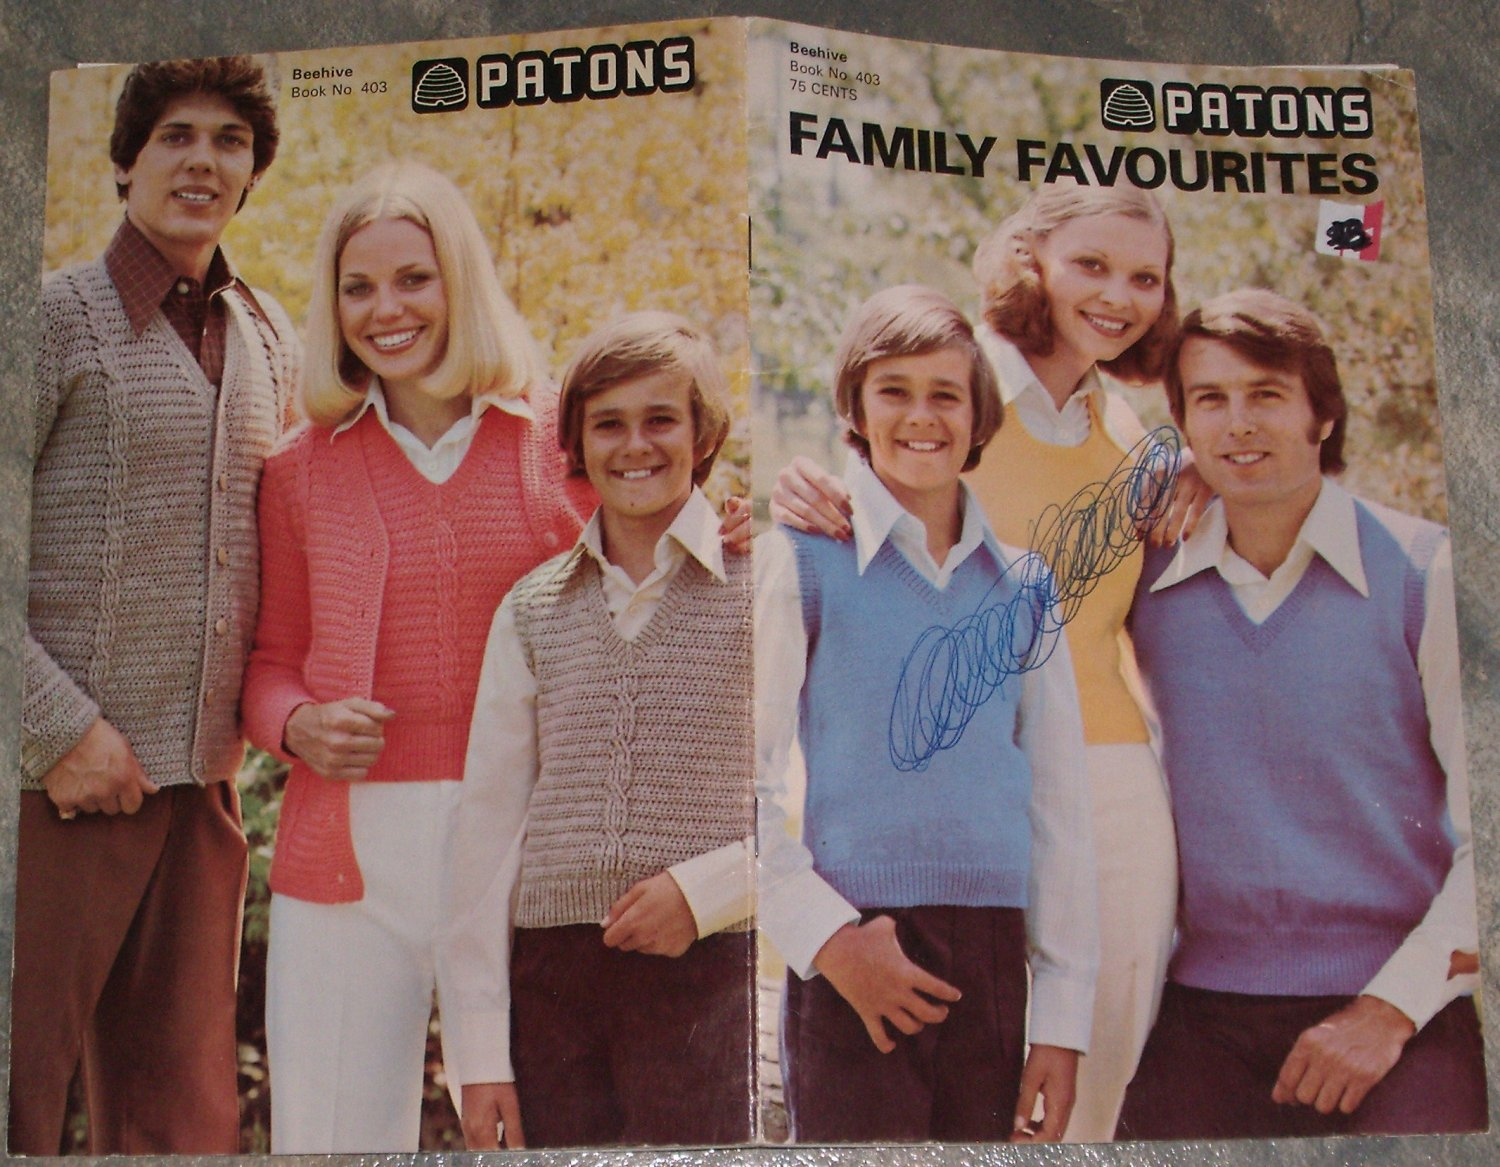 Patons Family Favourites Knitting Pattern Booklet #403